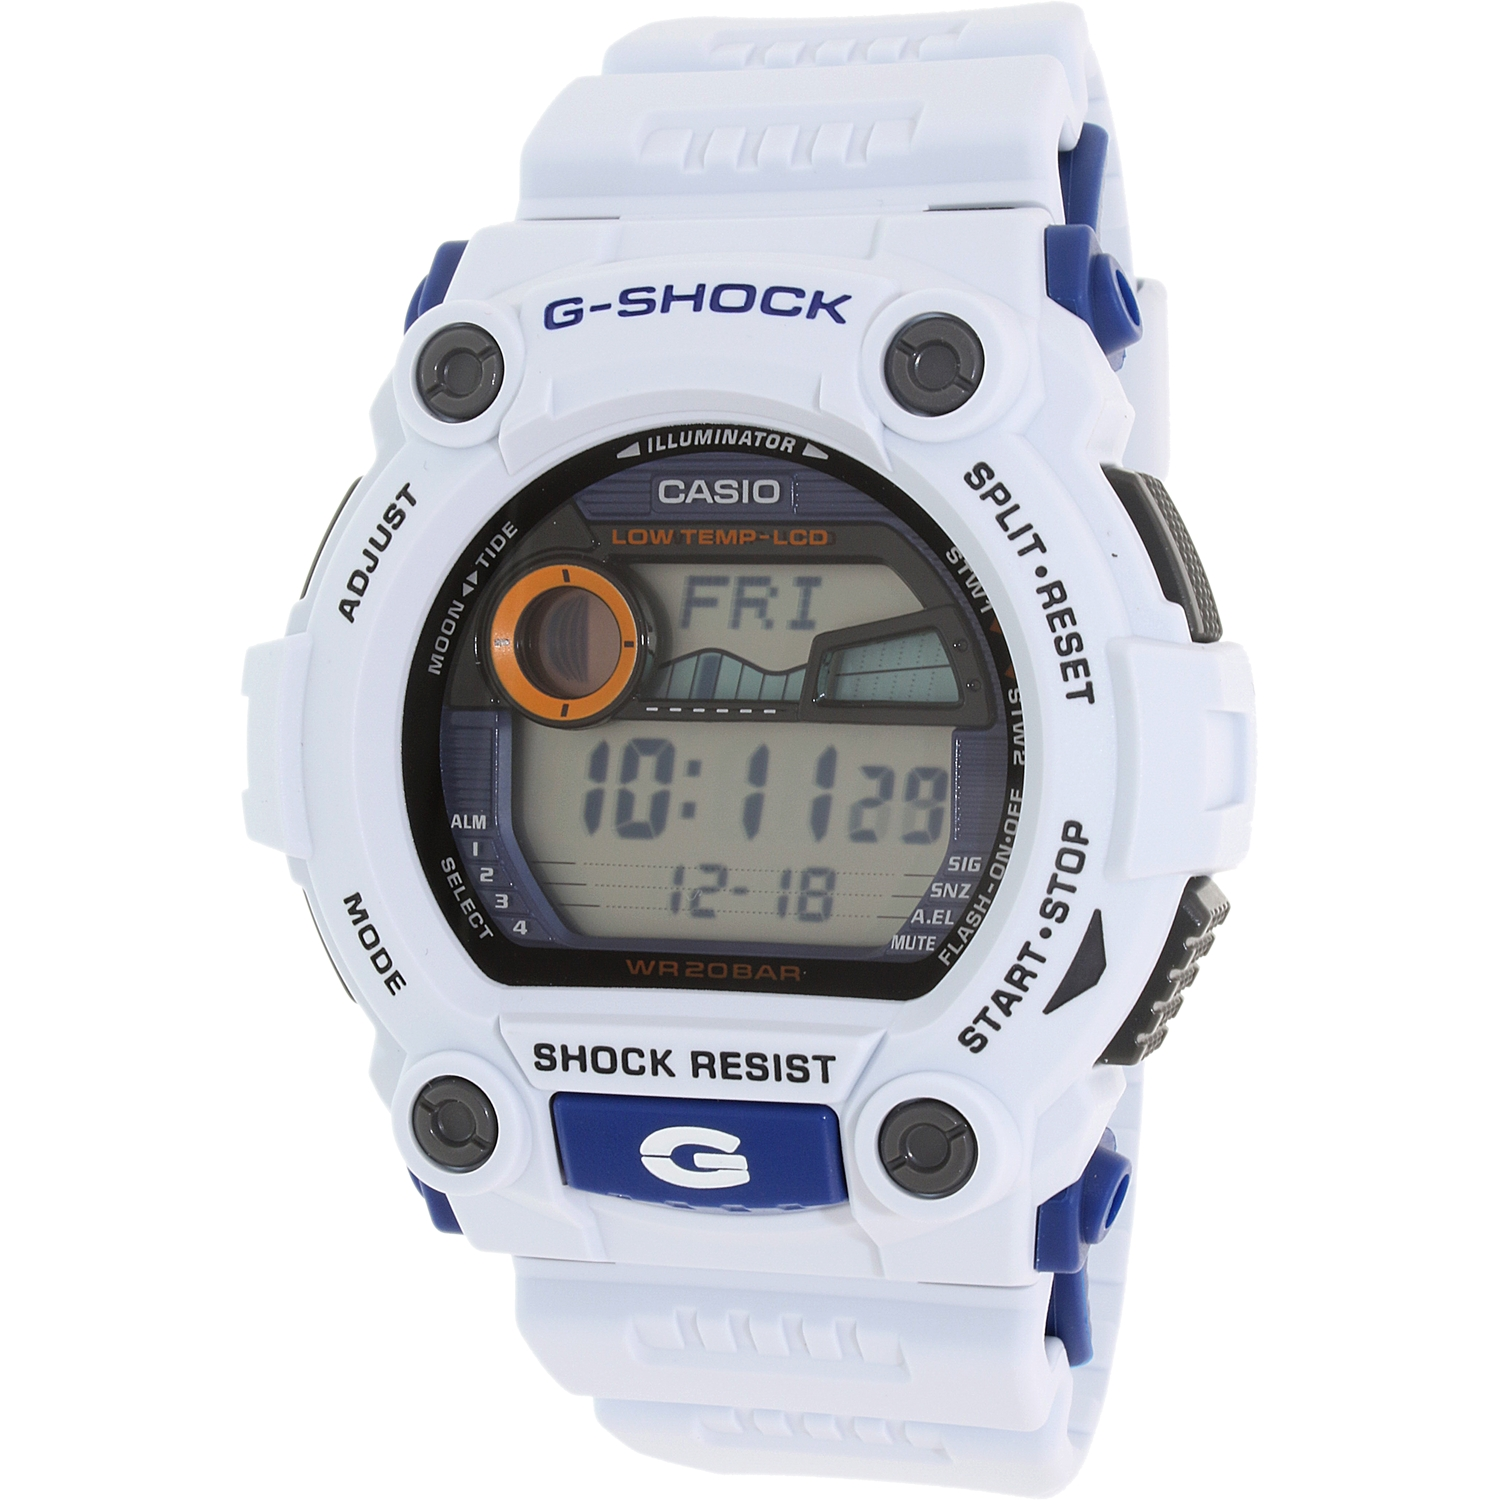 Casio Men's G-Shock G7900A-7 Blue Resin Quartz Watch